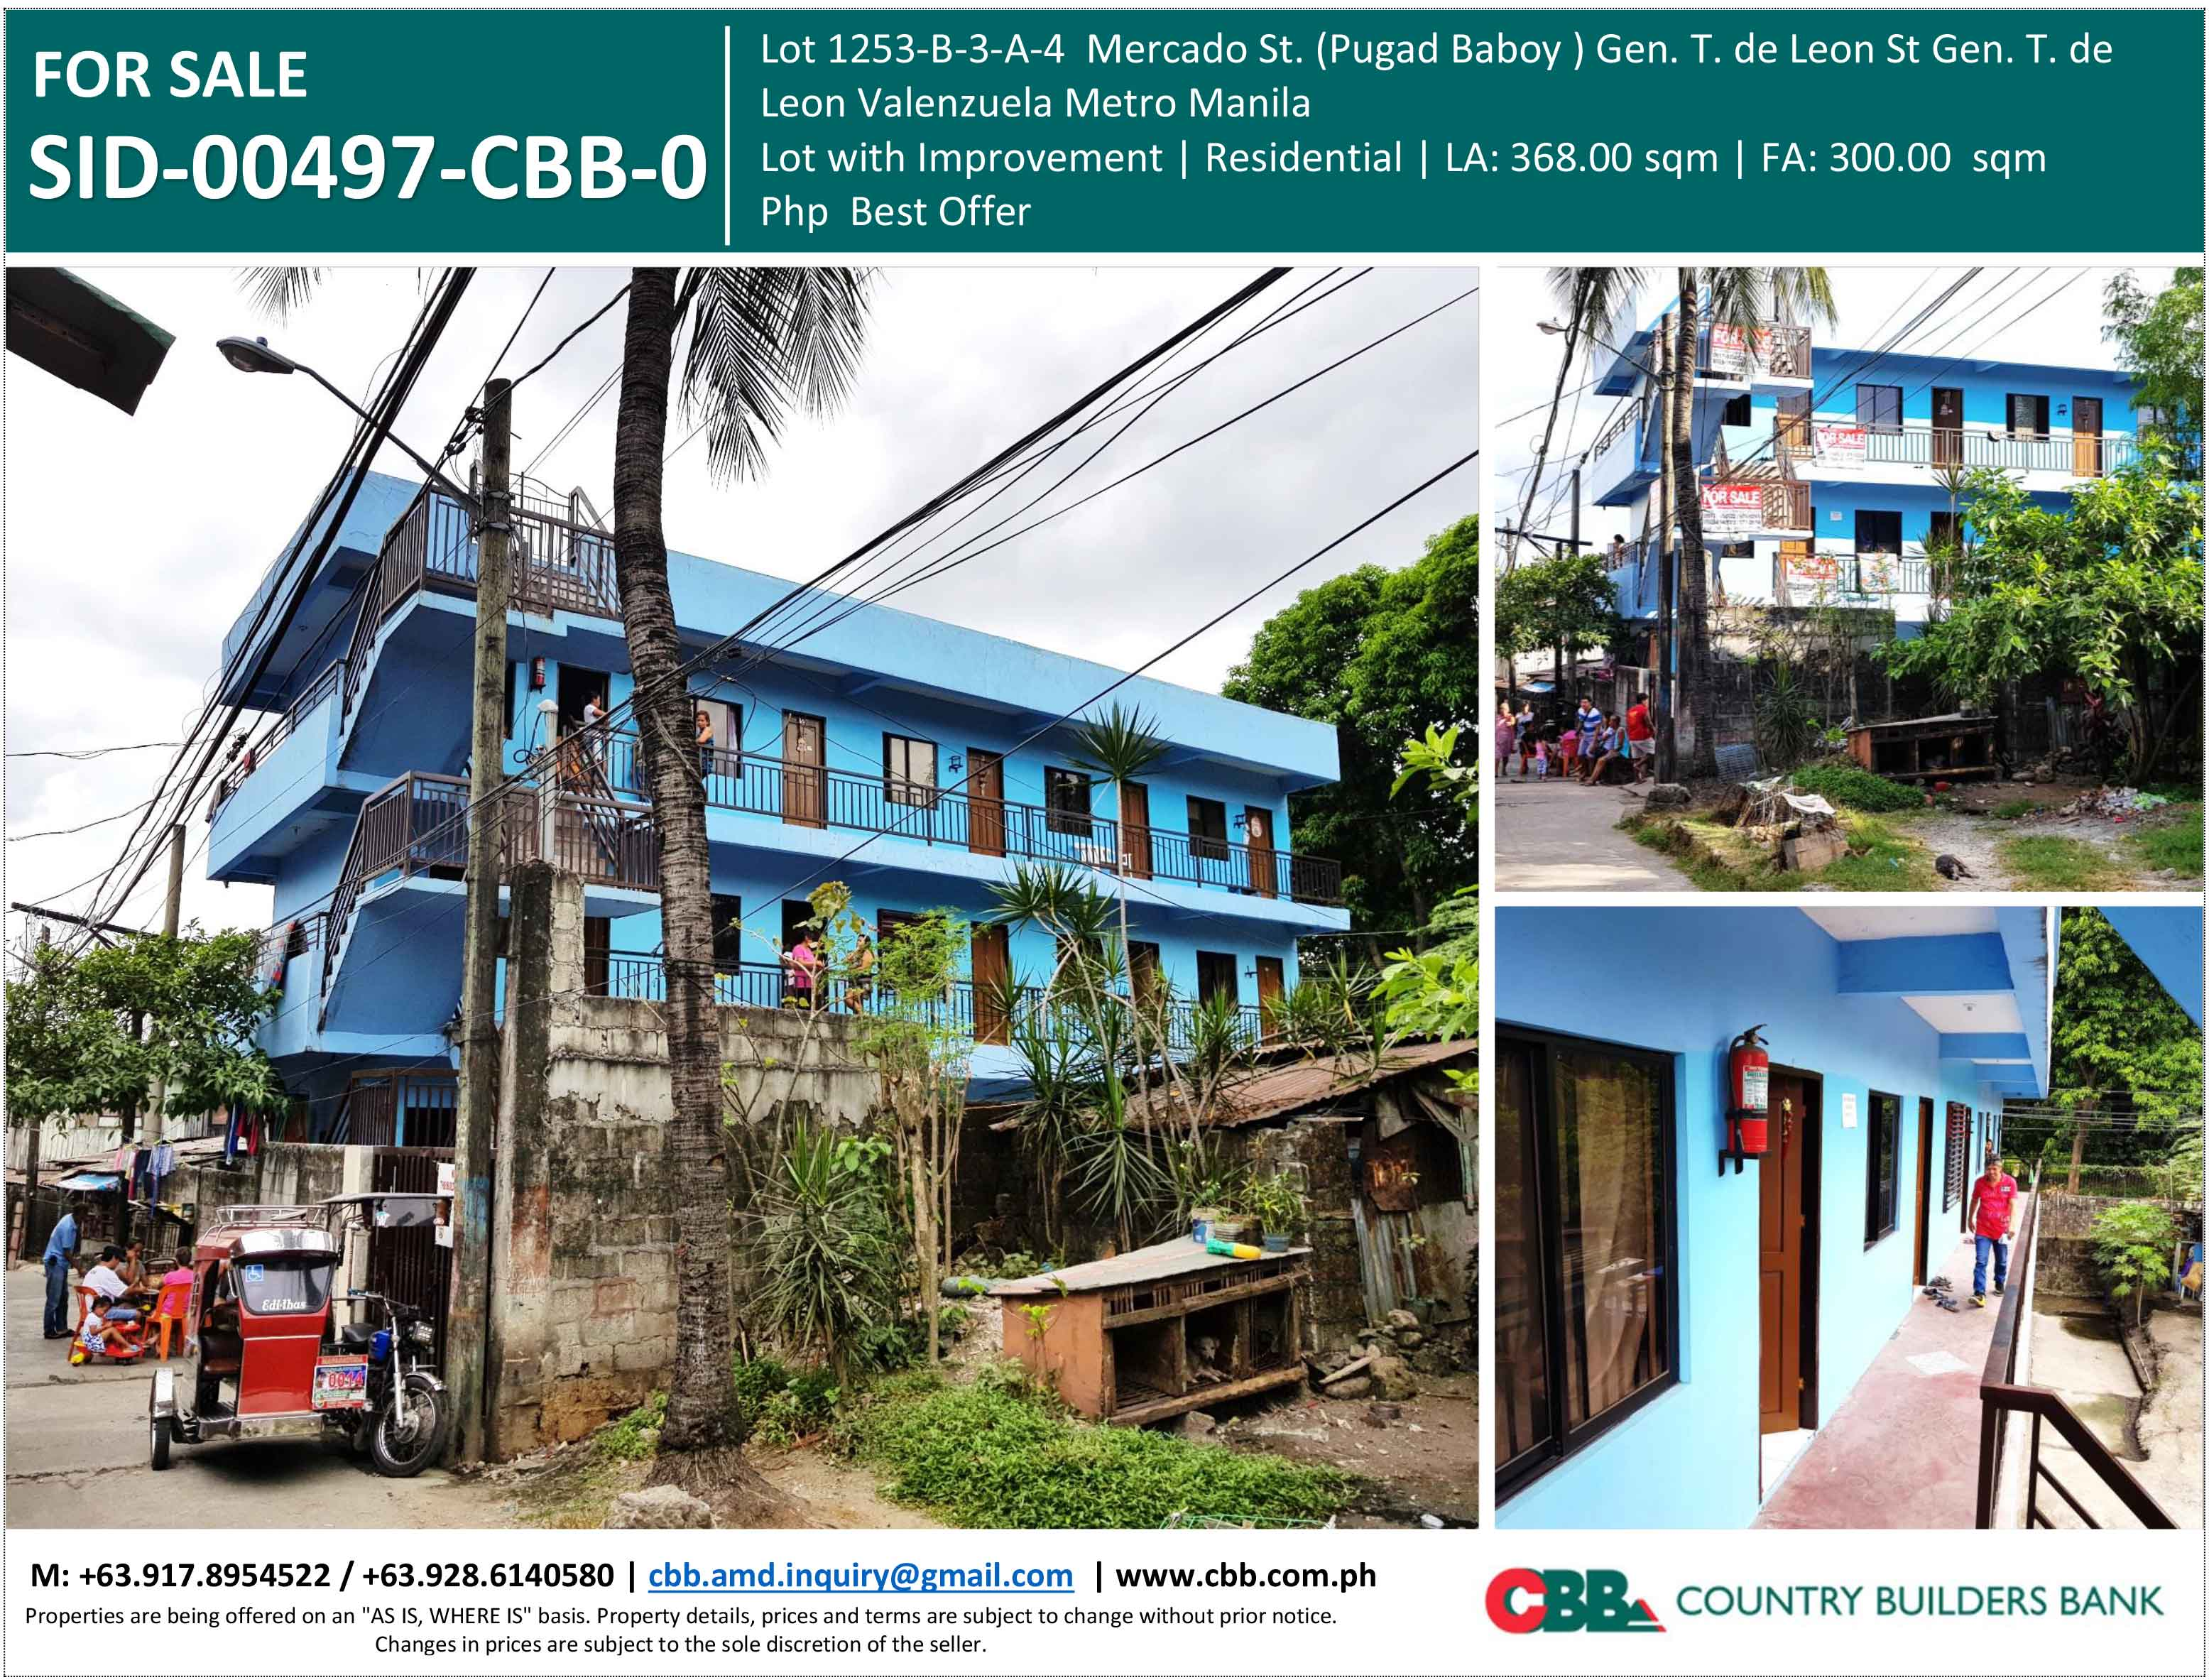 Properties for Sale | Country Builders Bank Inc